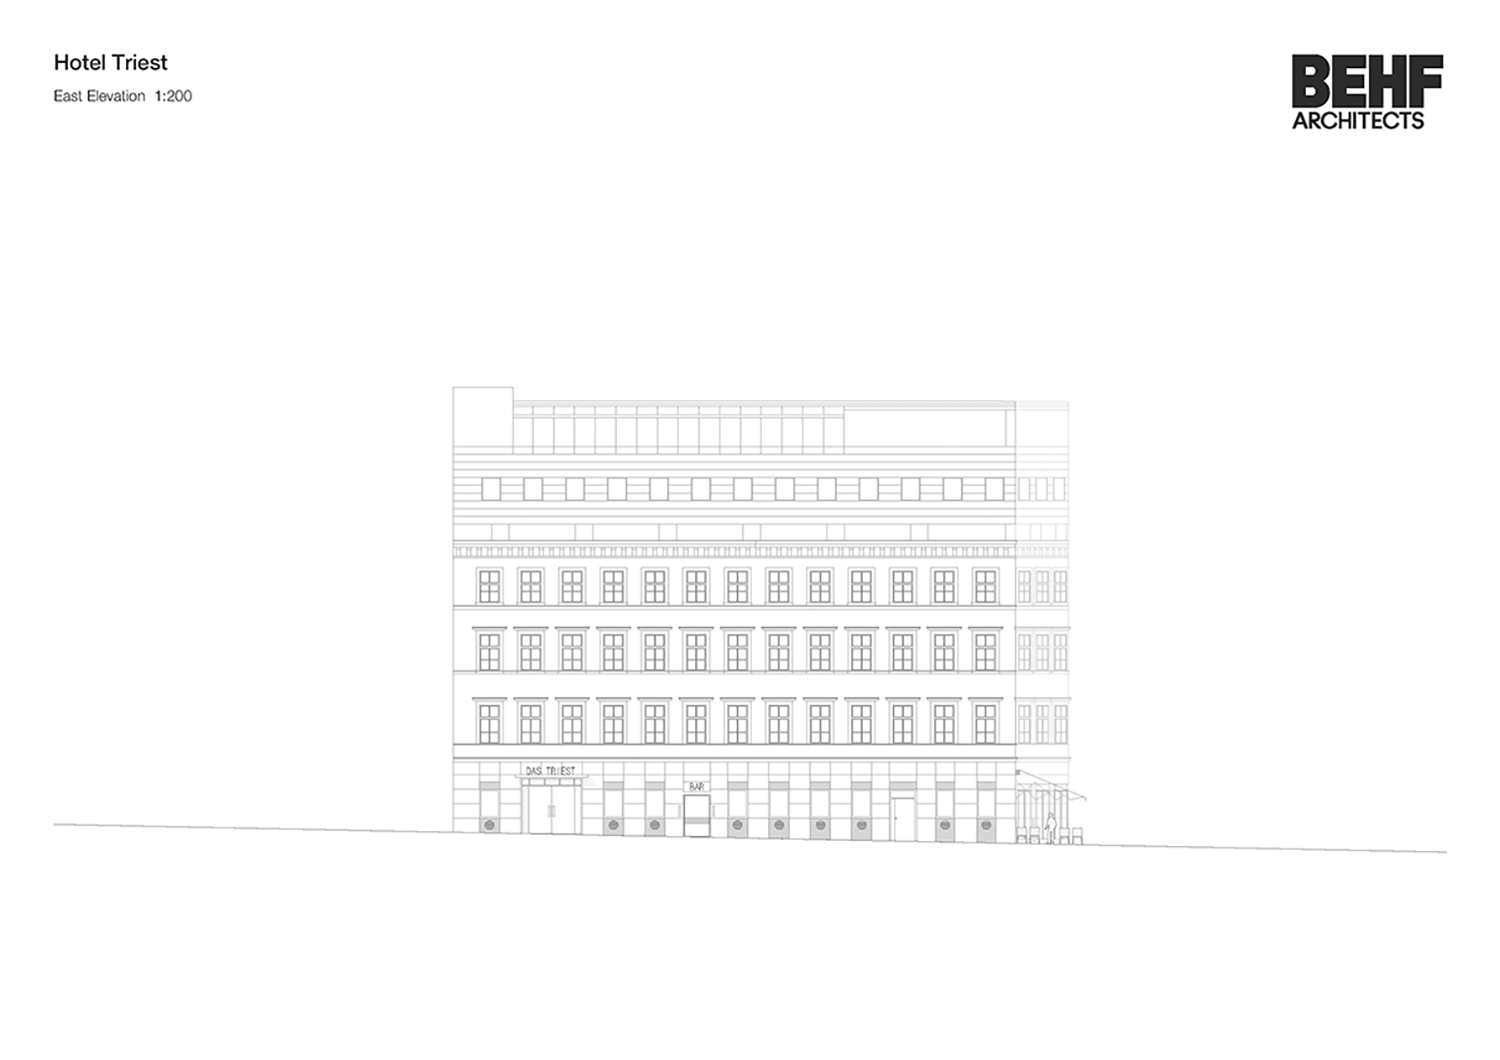 Hotel Triest East Elevation BEHFArchitects}